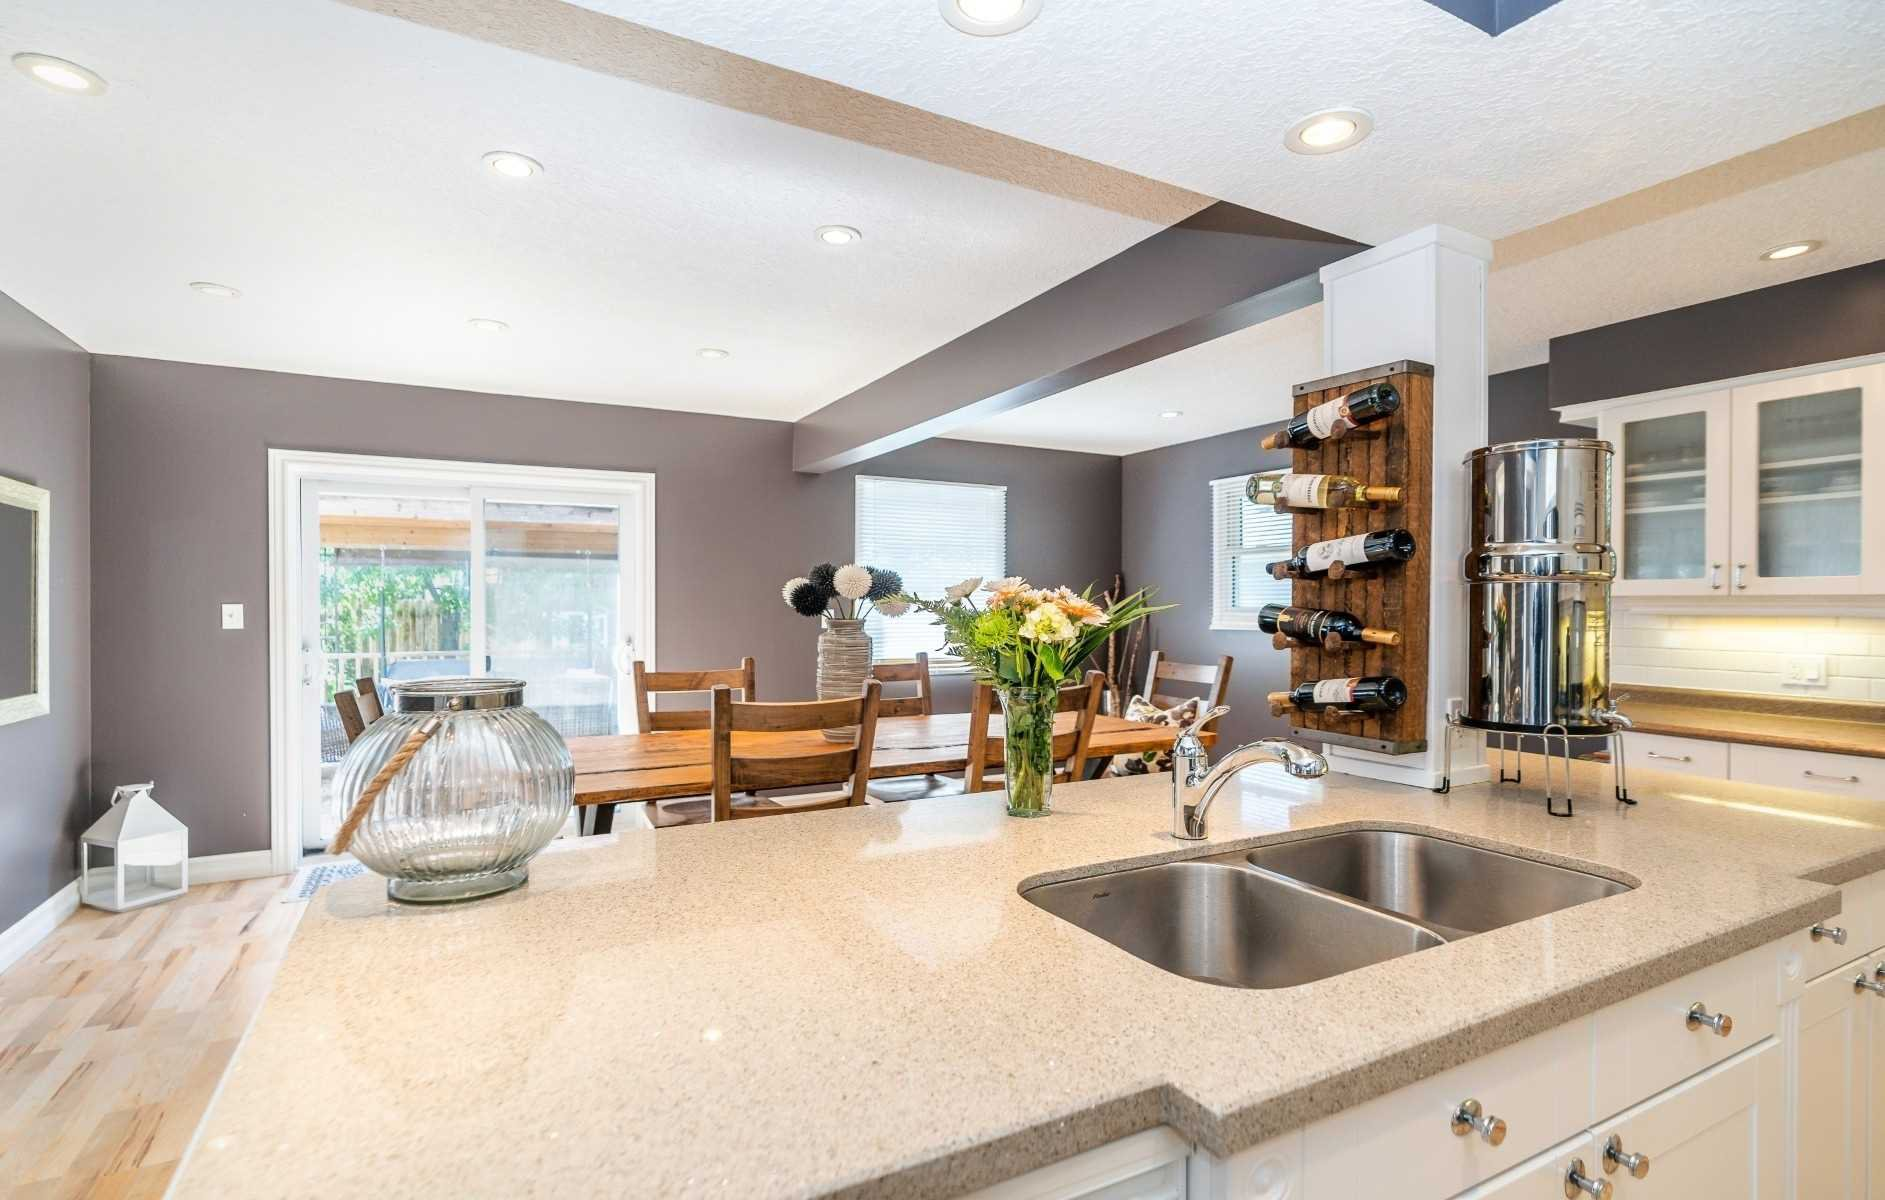 Photo 17: Photos: 1153 Snowberry Court in Oshawa: Pinecrest House (2-Storey) for sale : MLS®# E4794796